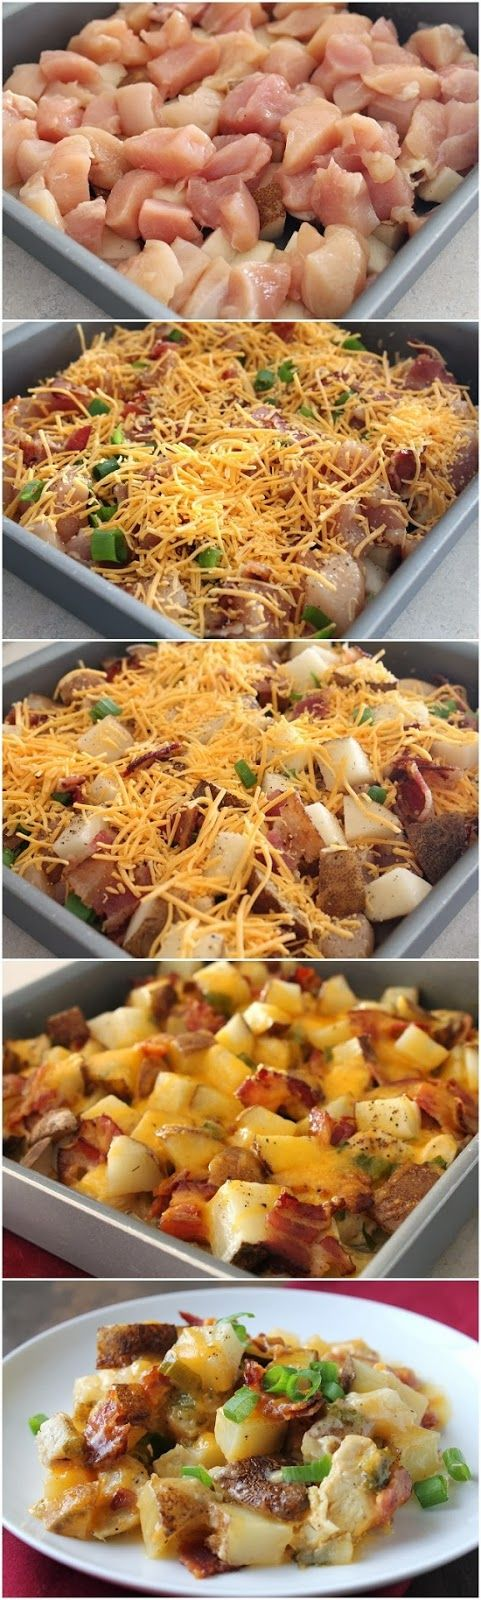 Loaded Baked Potato And Chicken Casserole ~ substitute quark for the heavy cream and count the cheese as HE1, add some veggies like broccoli and this will make a yummy slimming world syn free dinner